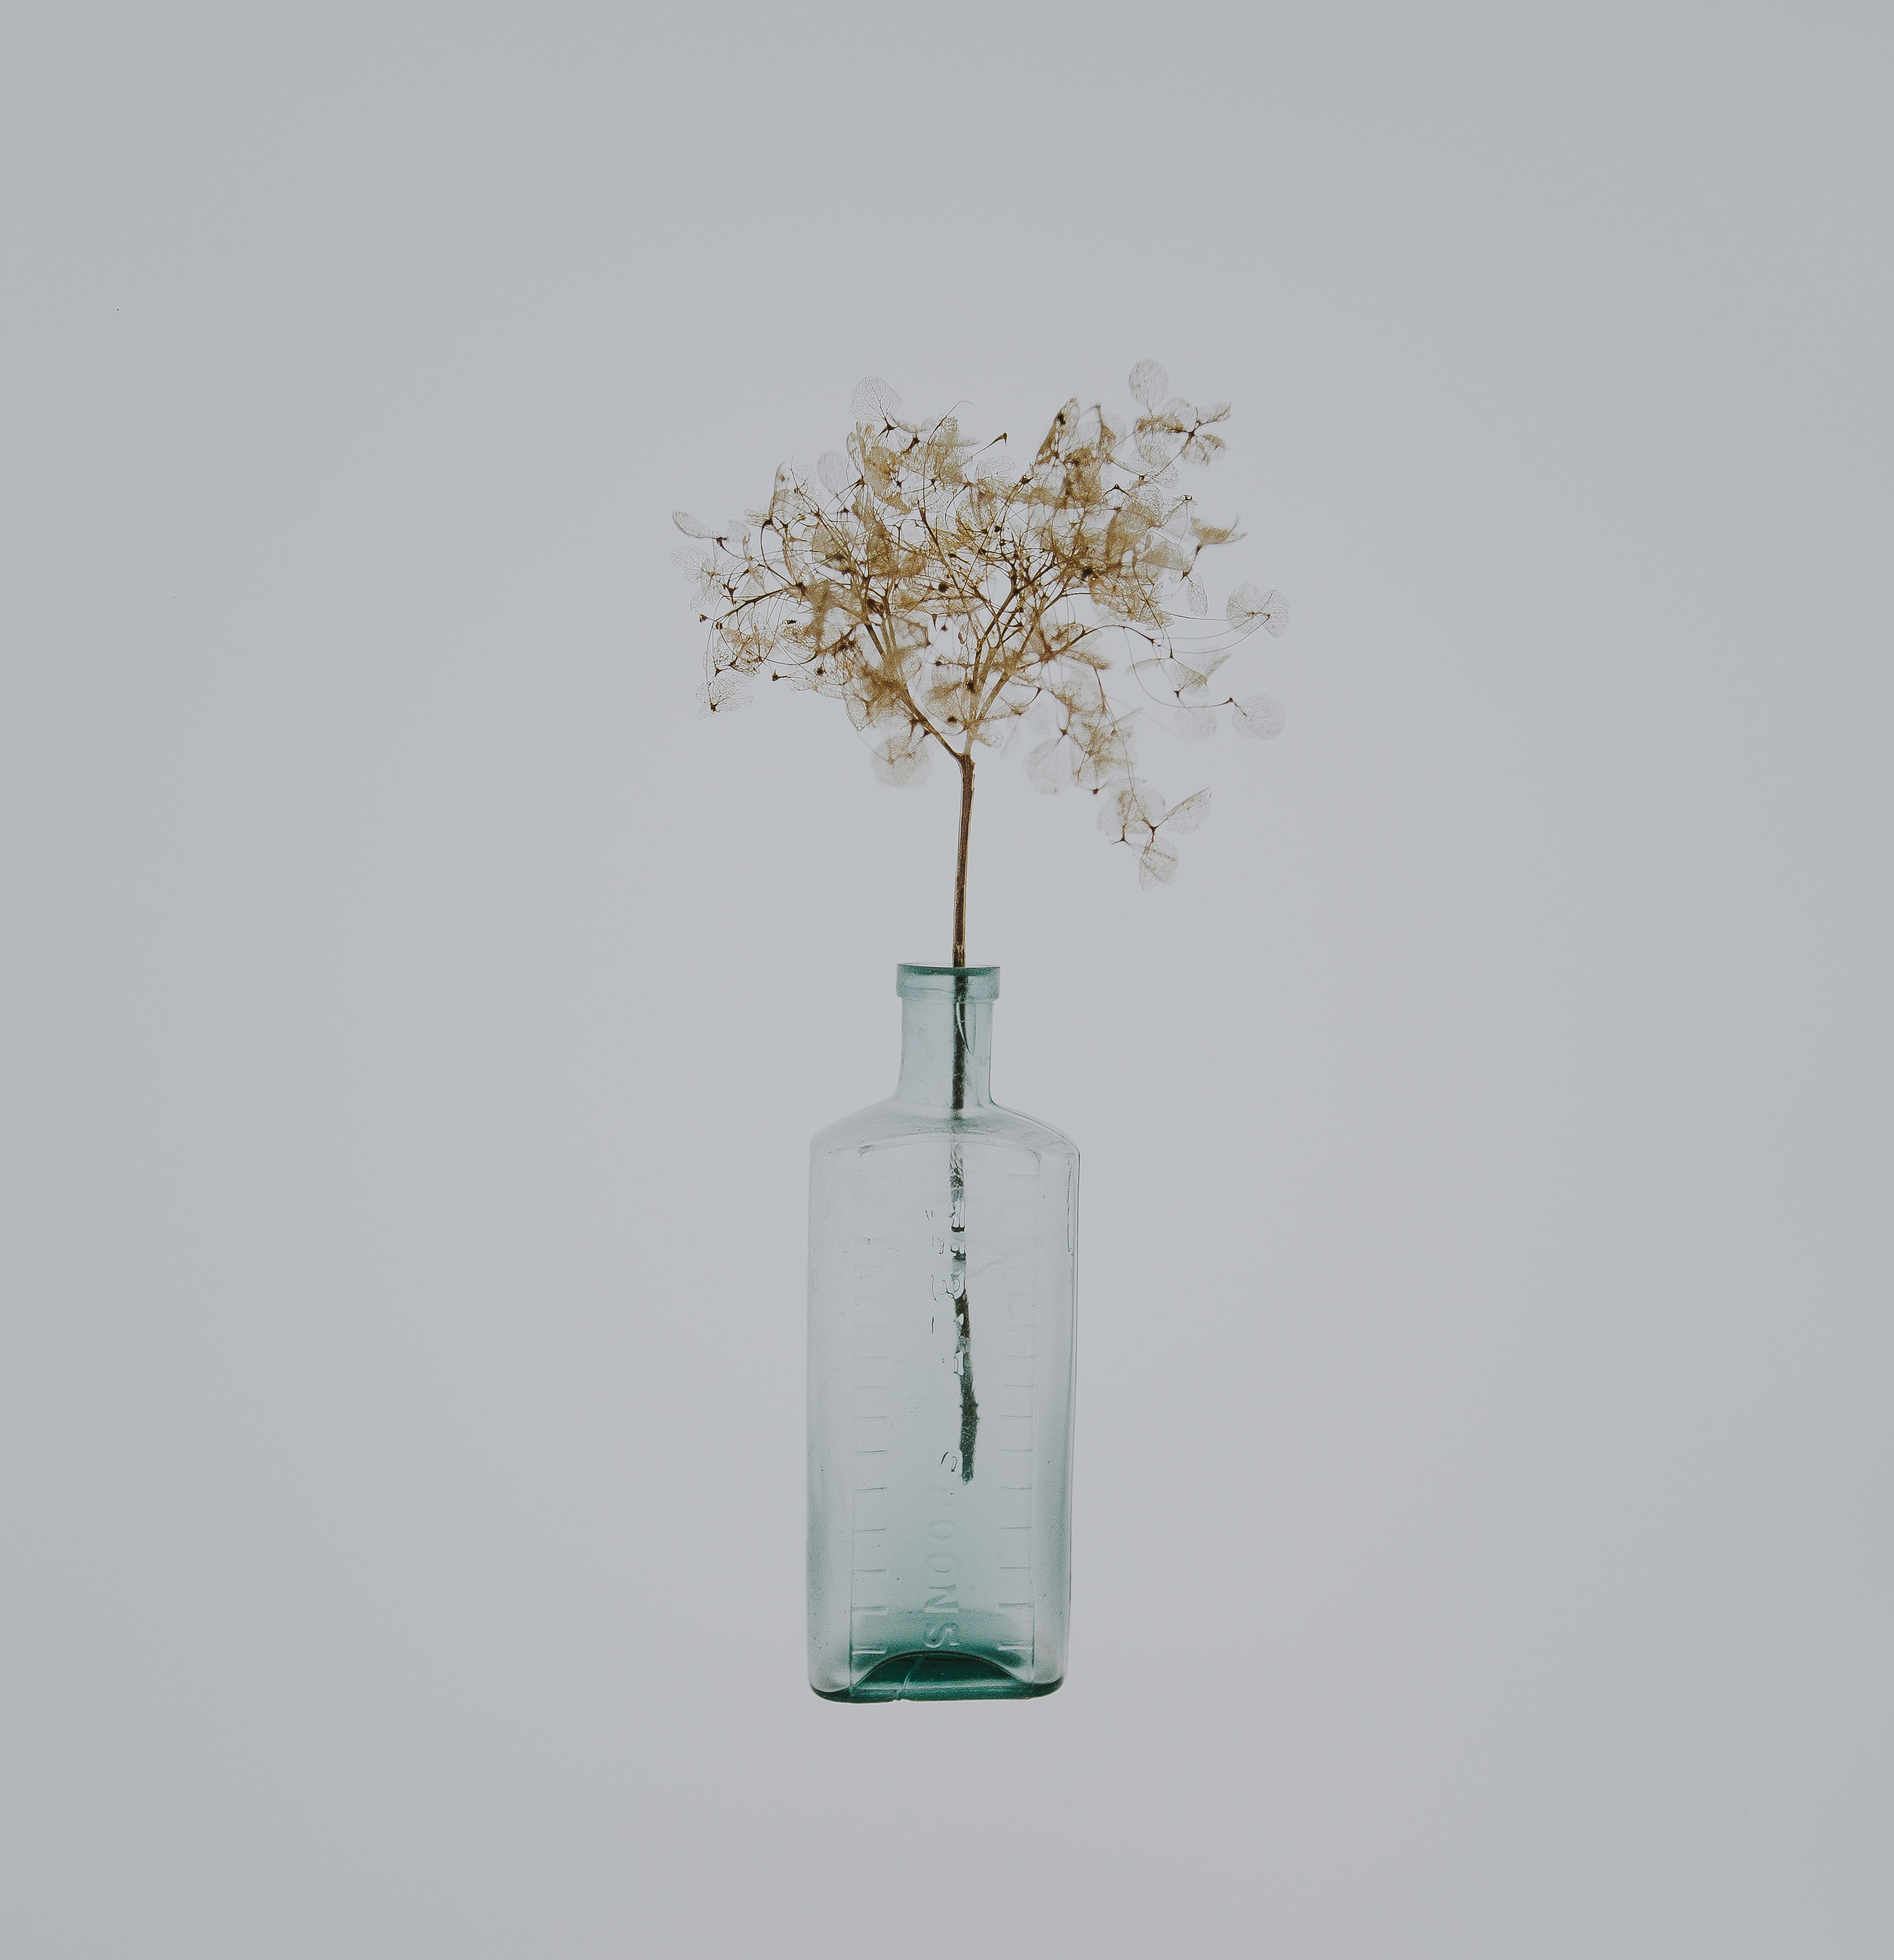 white petal flower in clear bottle on white background